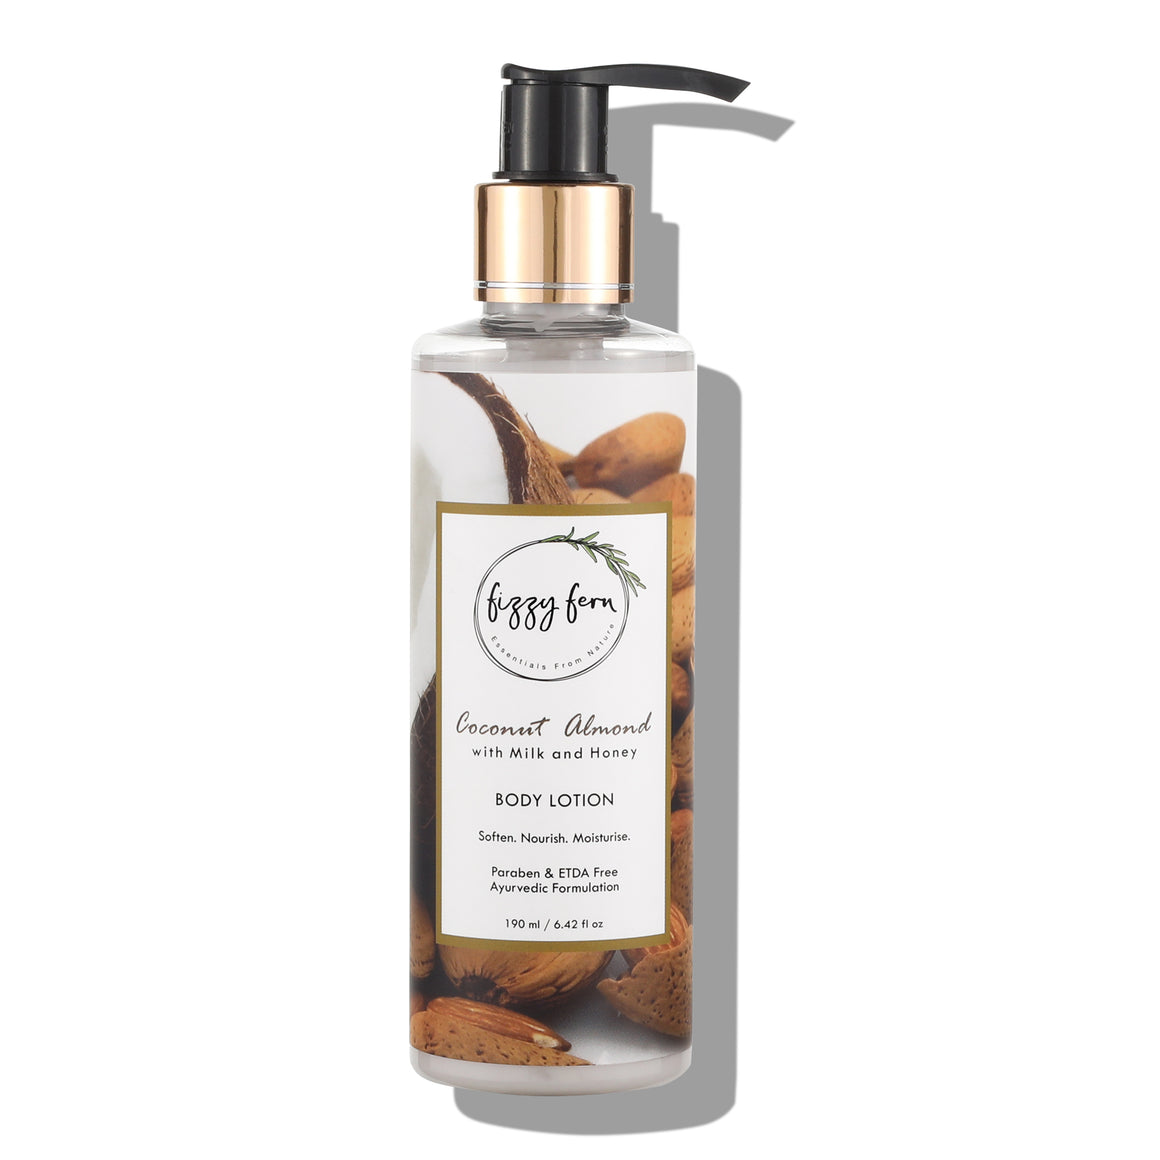 Coconut Almond Body Lotion, with Milk & Honey